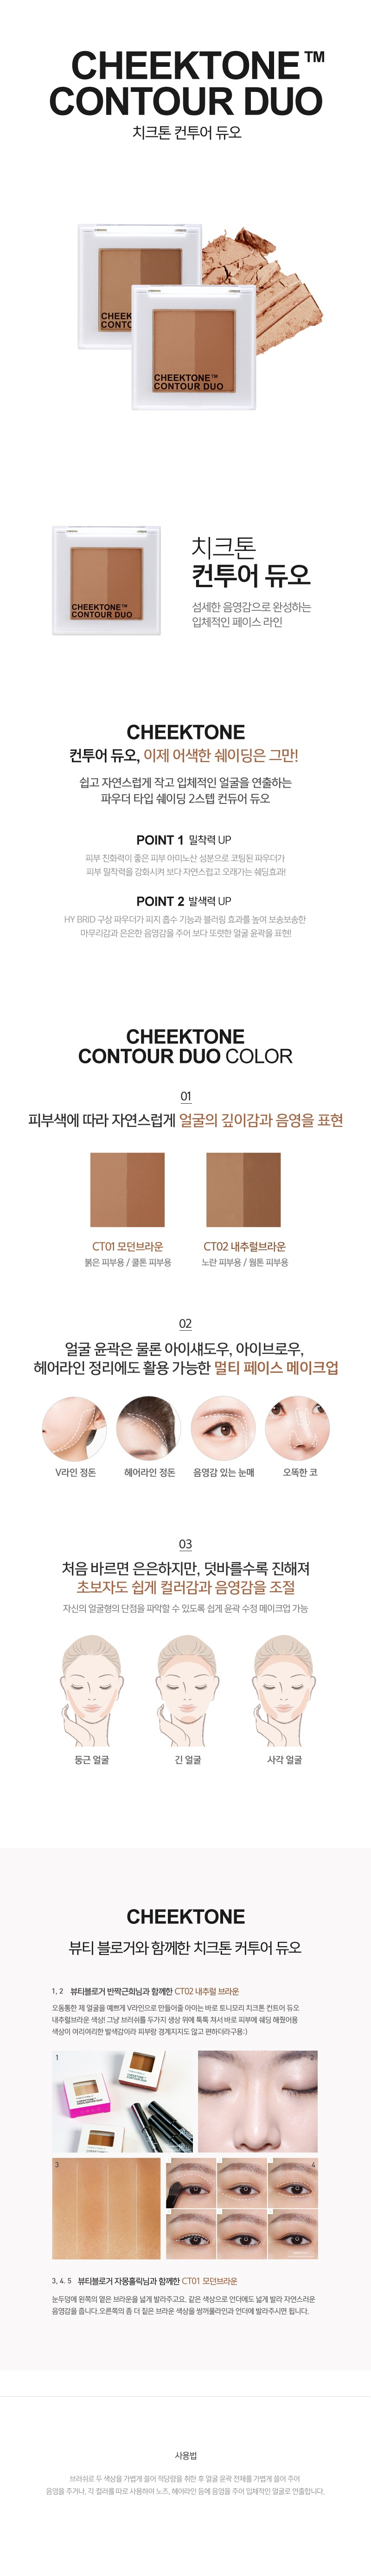 Tony Moly Cheektone Contour Duo korean cosmetic makeup product online shop malaysia spain portugal1